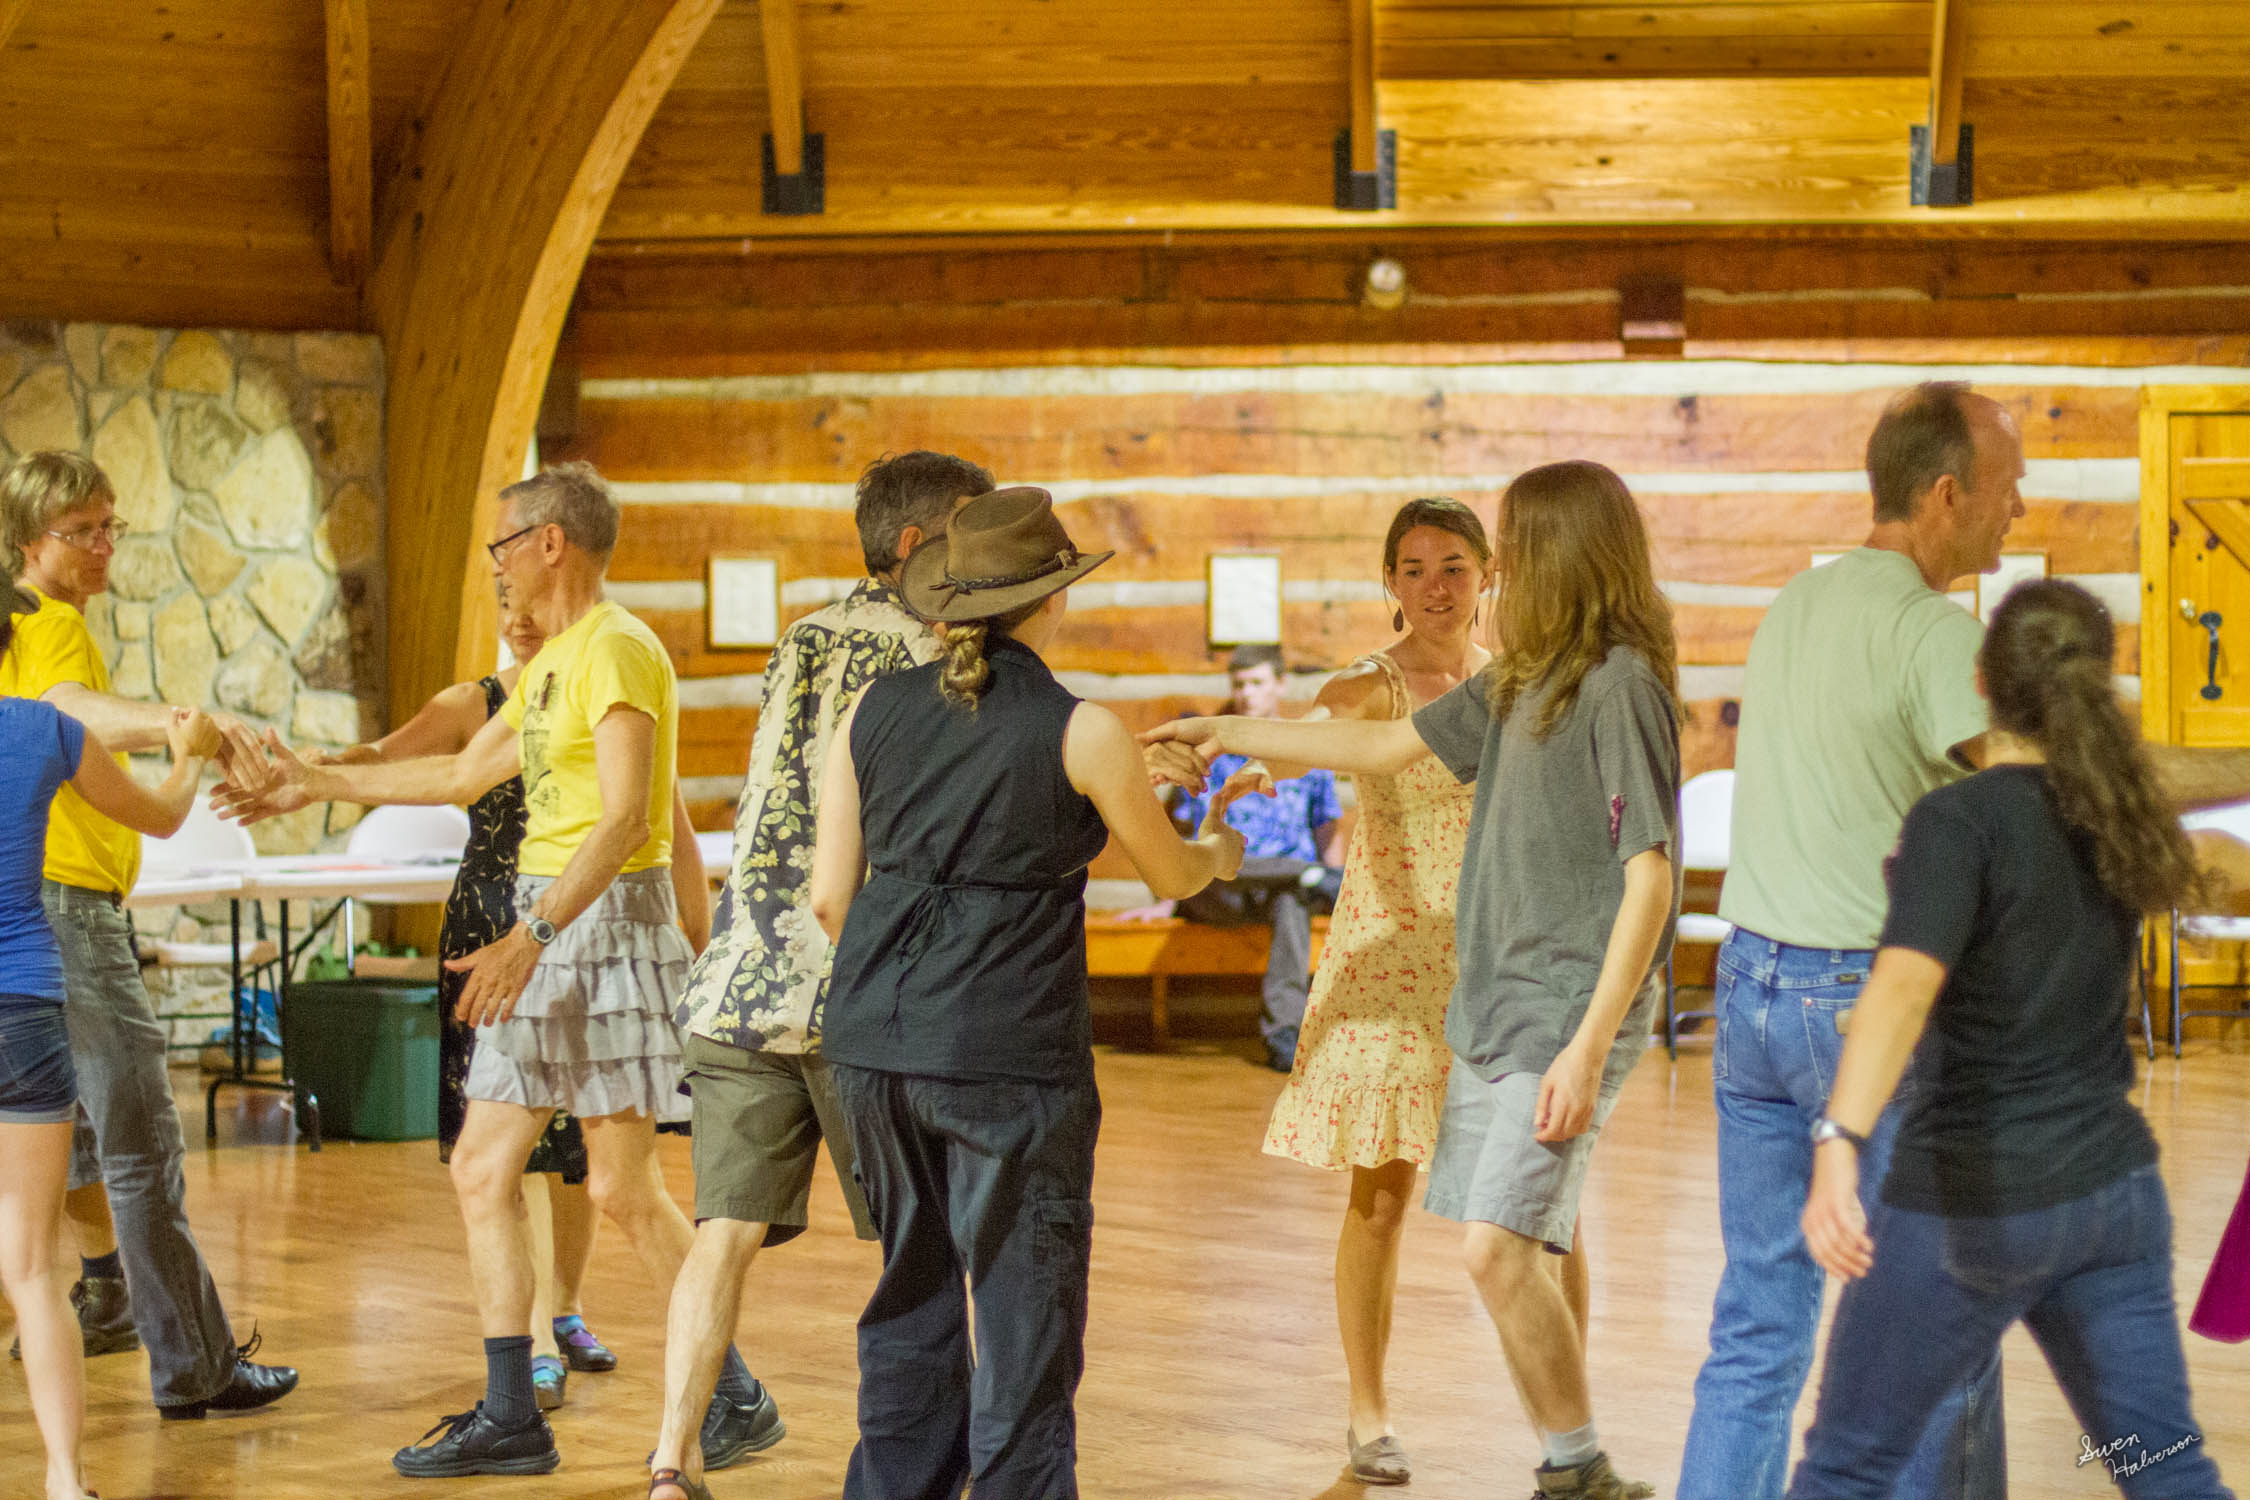 Contra dancing in Berea-029.jpg